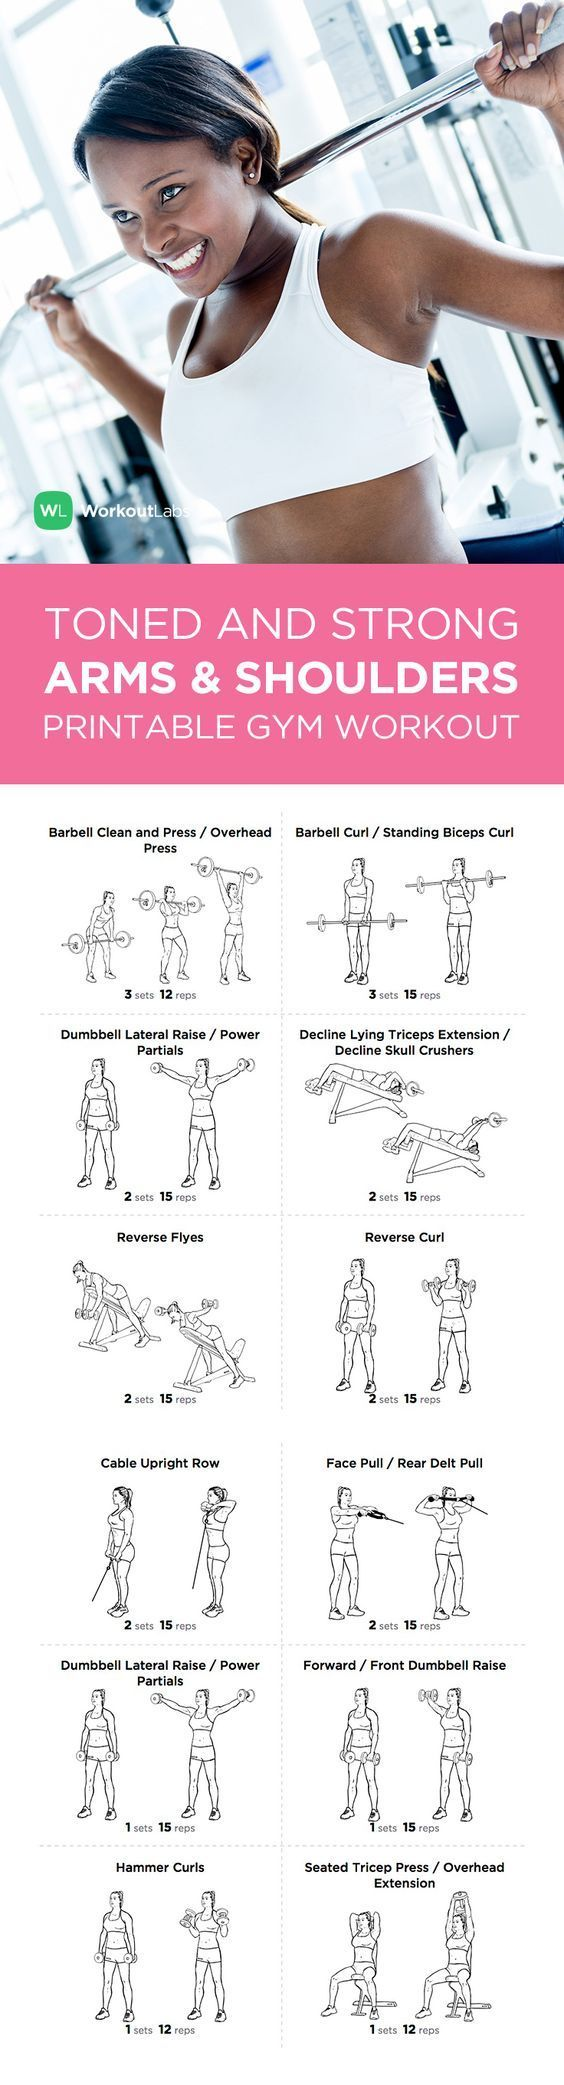 Wont Six Pack Abs Gain Muscle Or Weight Loss These Workout Plan Is Great For Women With FREE WEEKENDS And No Gym Equipment